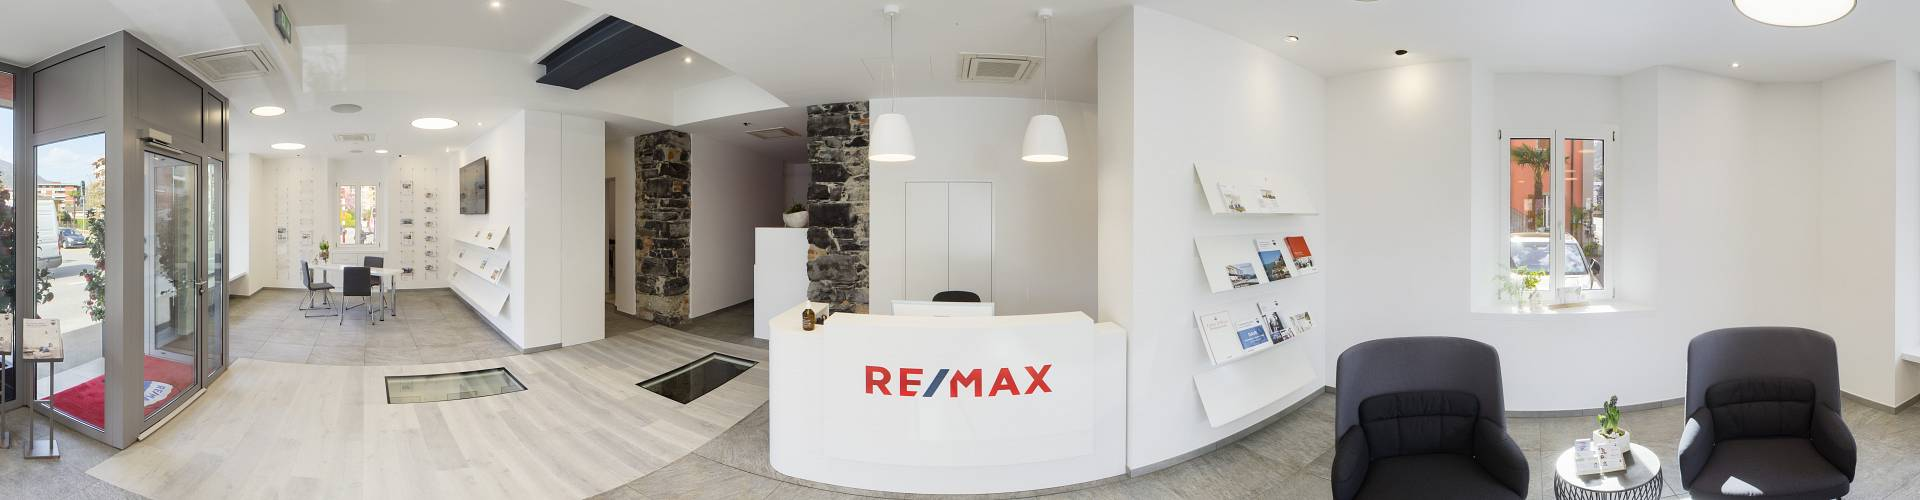 RE/MAX Immobiliare Agno